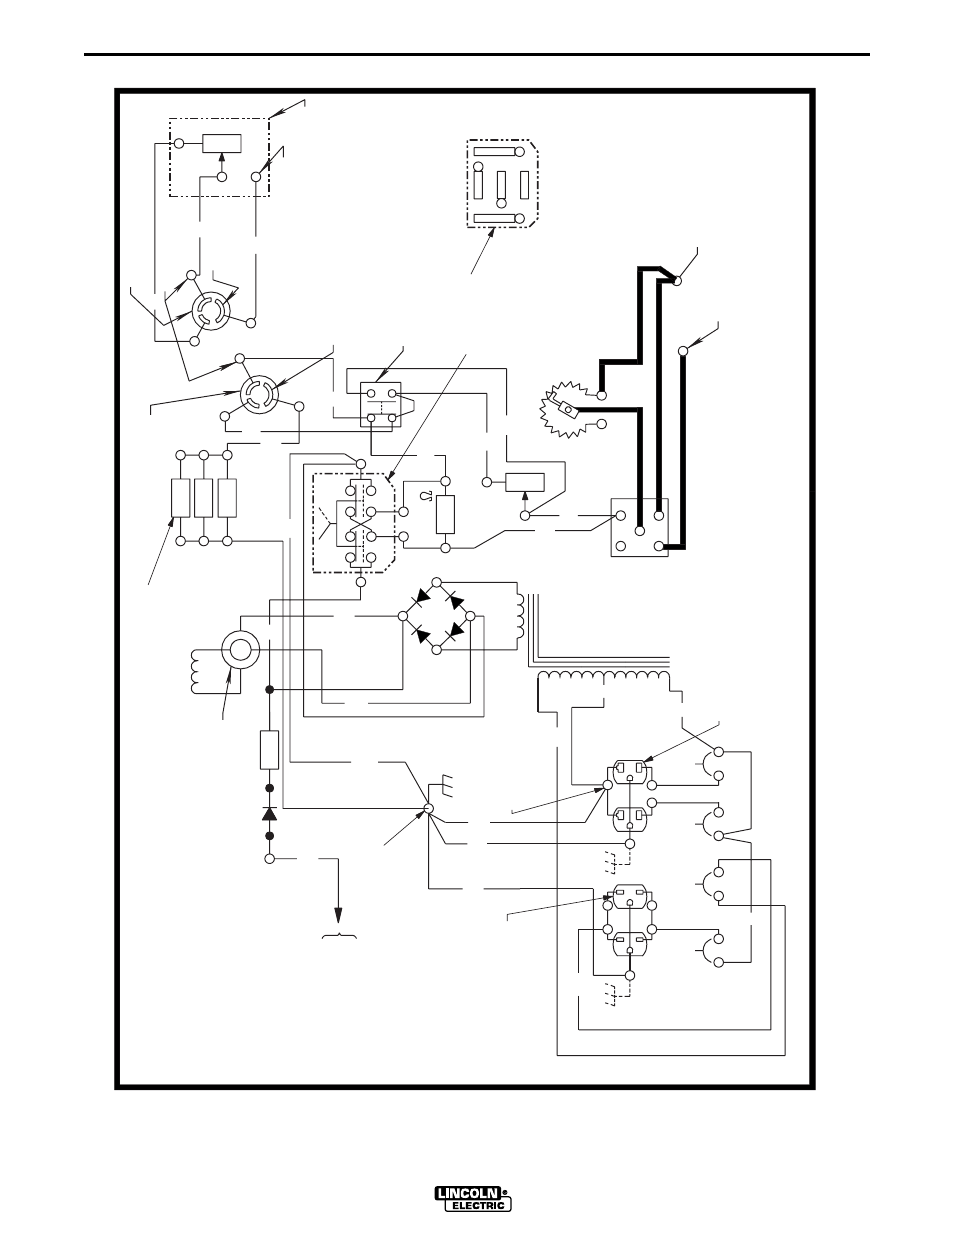 Wiring Diagrams Sae400 Weldn Air Control Diagram Sae 400 Duplex Lincoln Electric Im581 User Manual Page 28 34